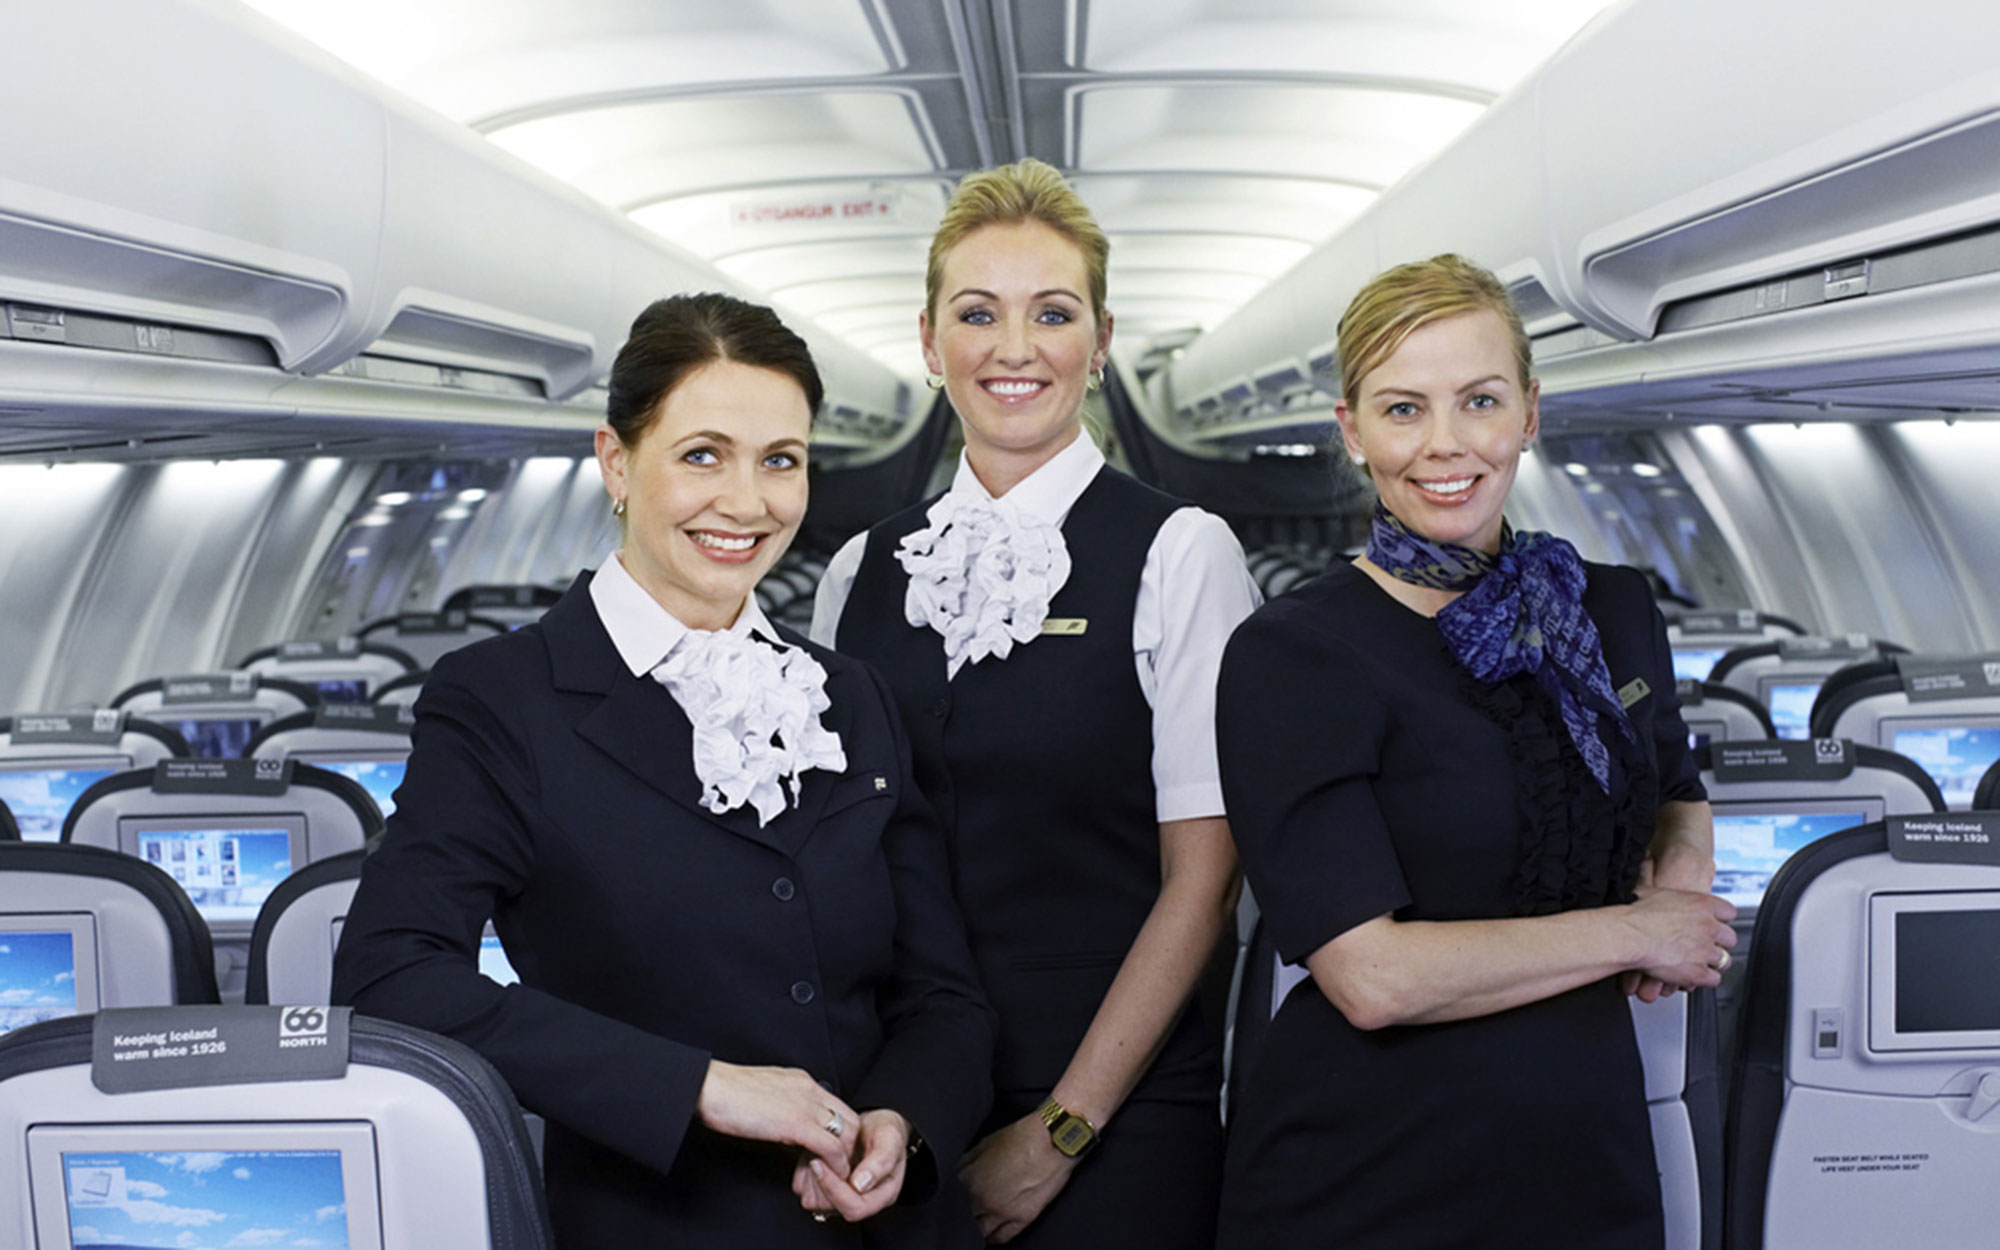 World's Best Airlines for Customer Service: Icelandair, International